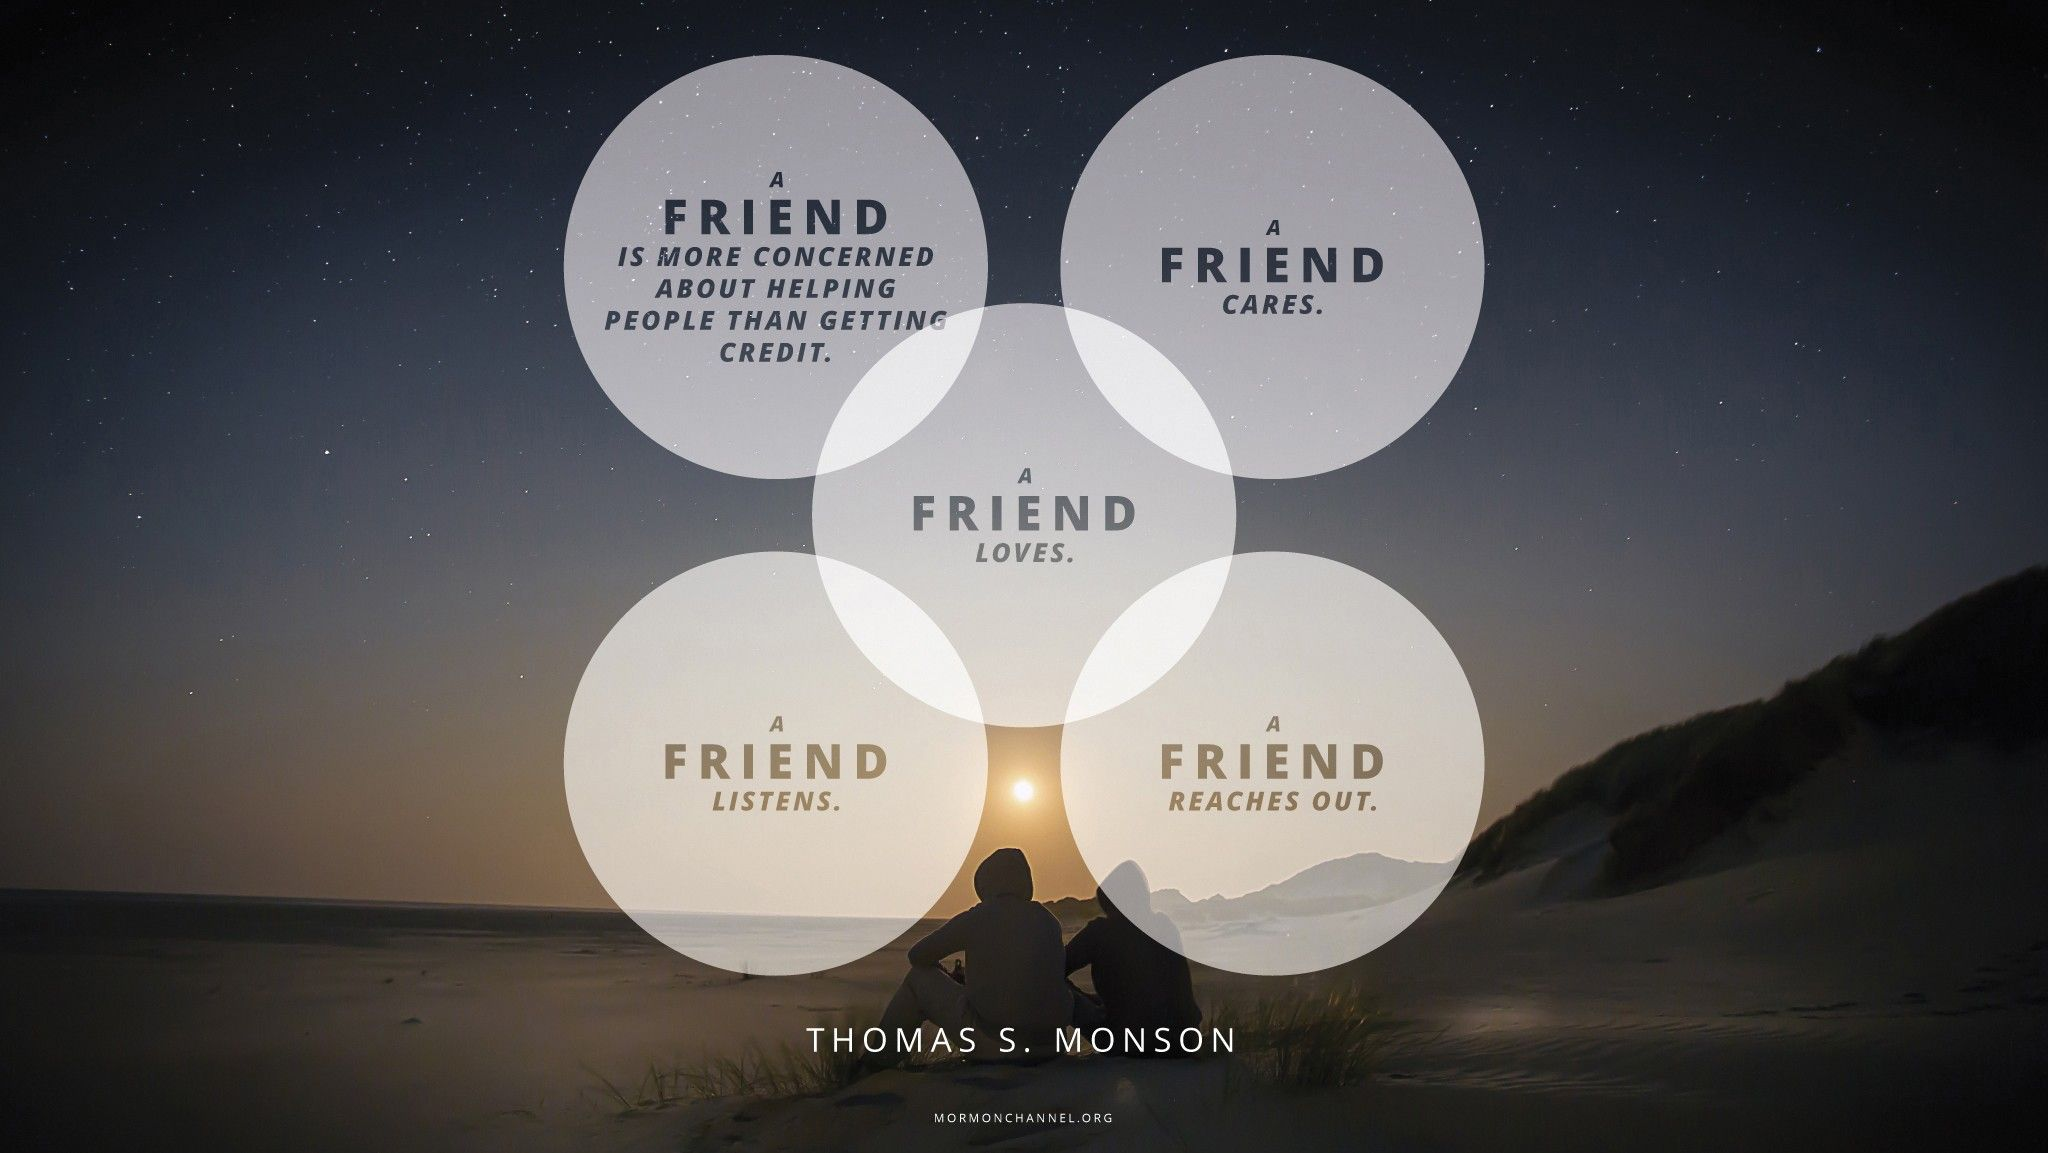 """""""A friend is more concerned about helping people than getting credit. A friend cares. A friend loves. A friend listens. And a friend reaches out.""""—President Thomas S. Monson, """"To the Rescue"""" © undefined ipCode 1."""